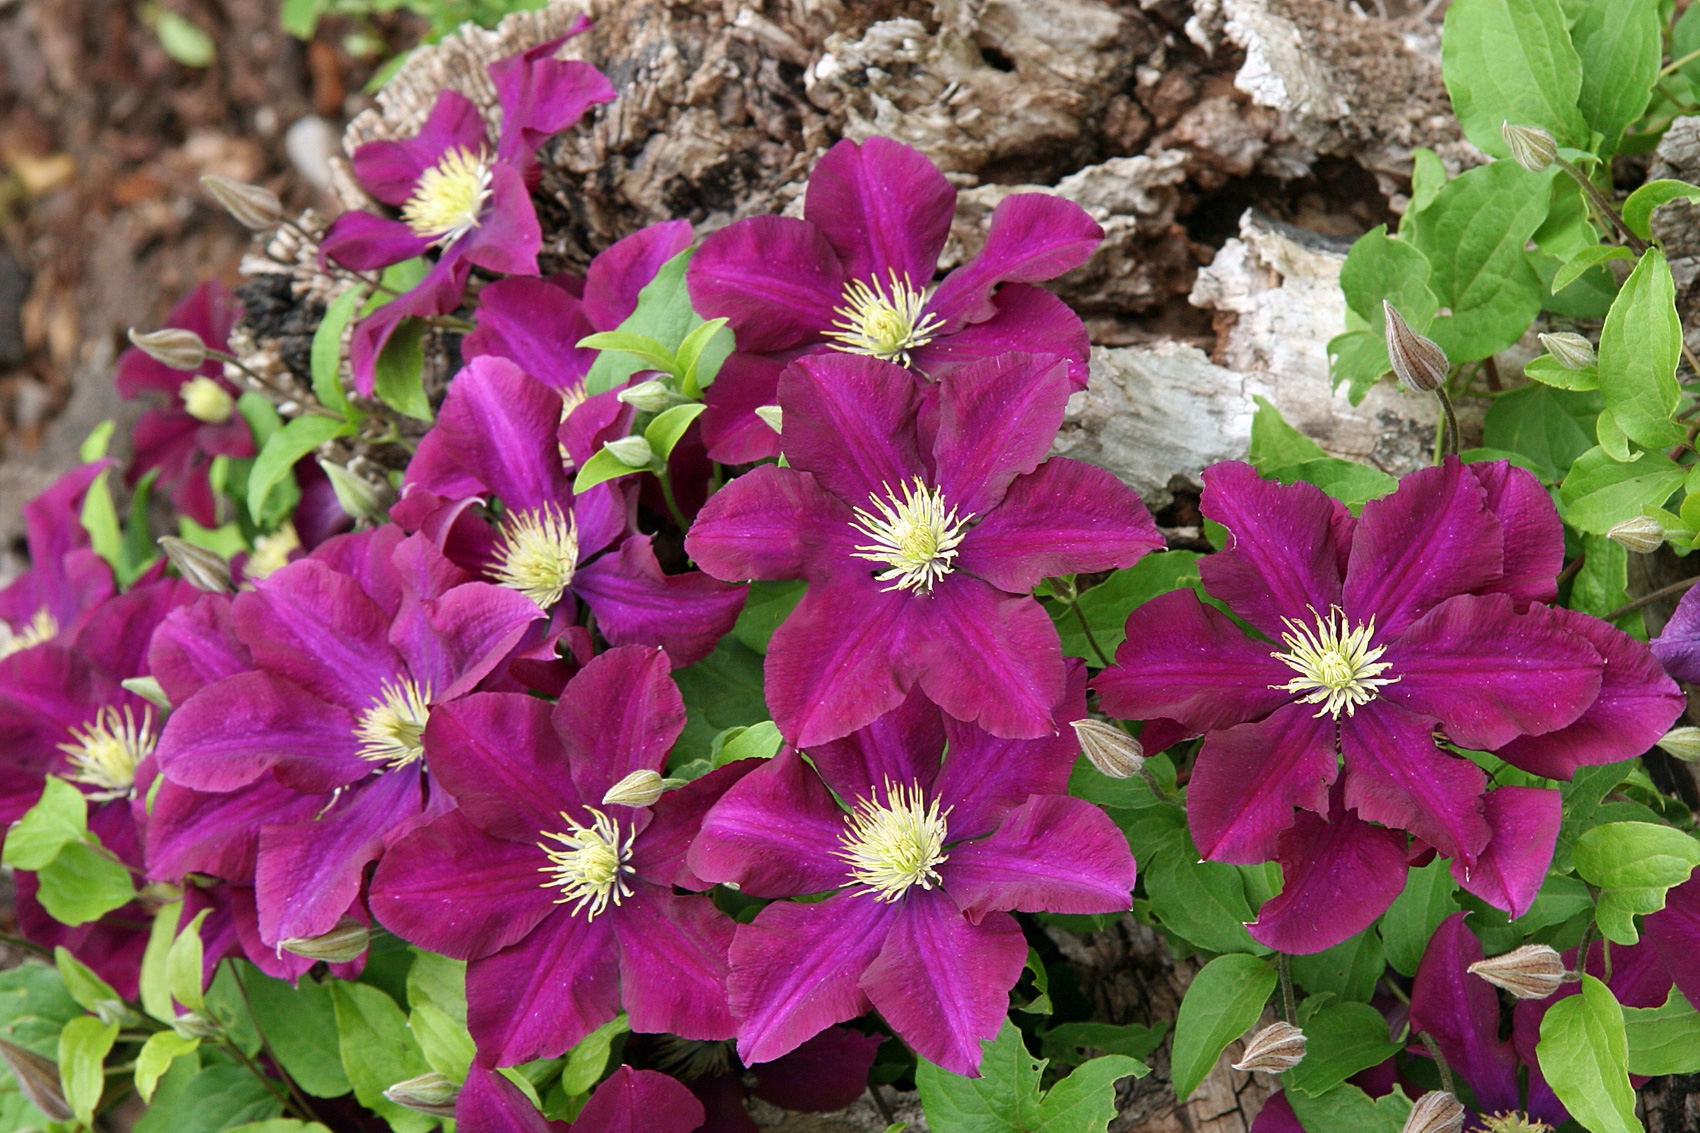 clematis gro blumige hybriden waldreben native plants. Black Bedroom Furniture Sets. Home Design Ideas